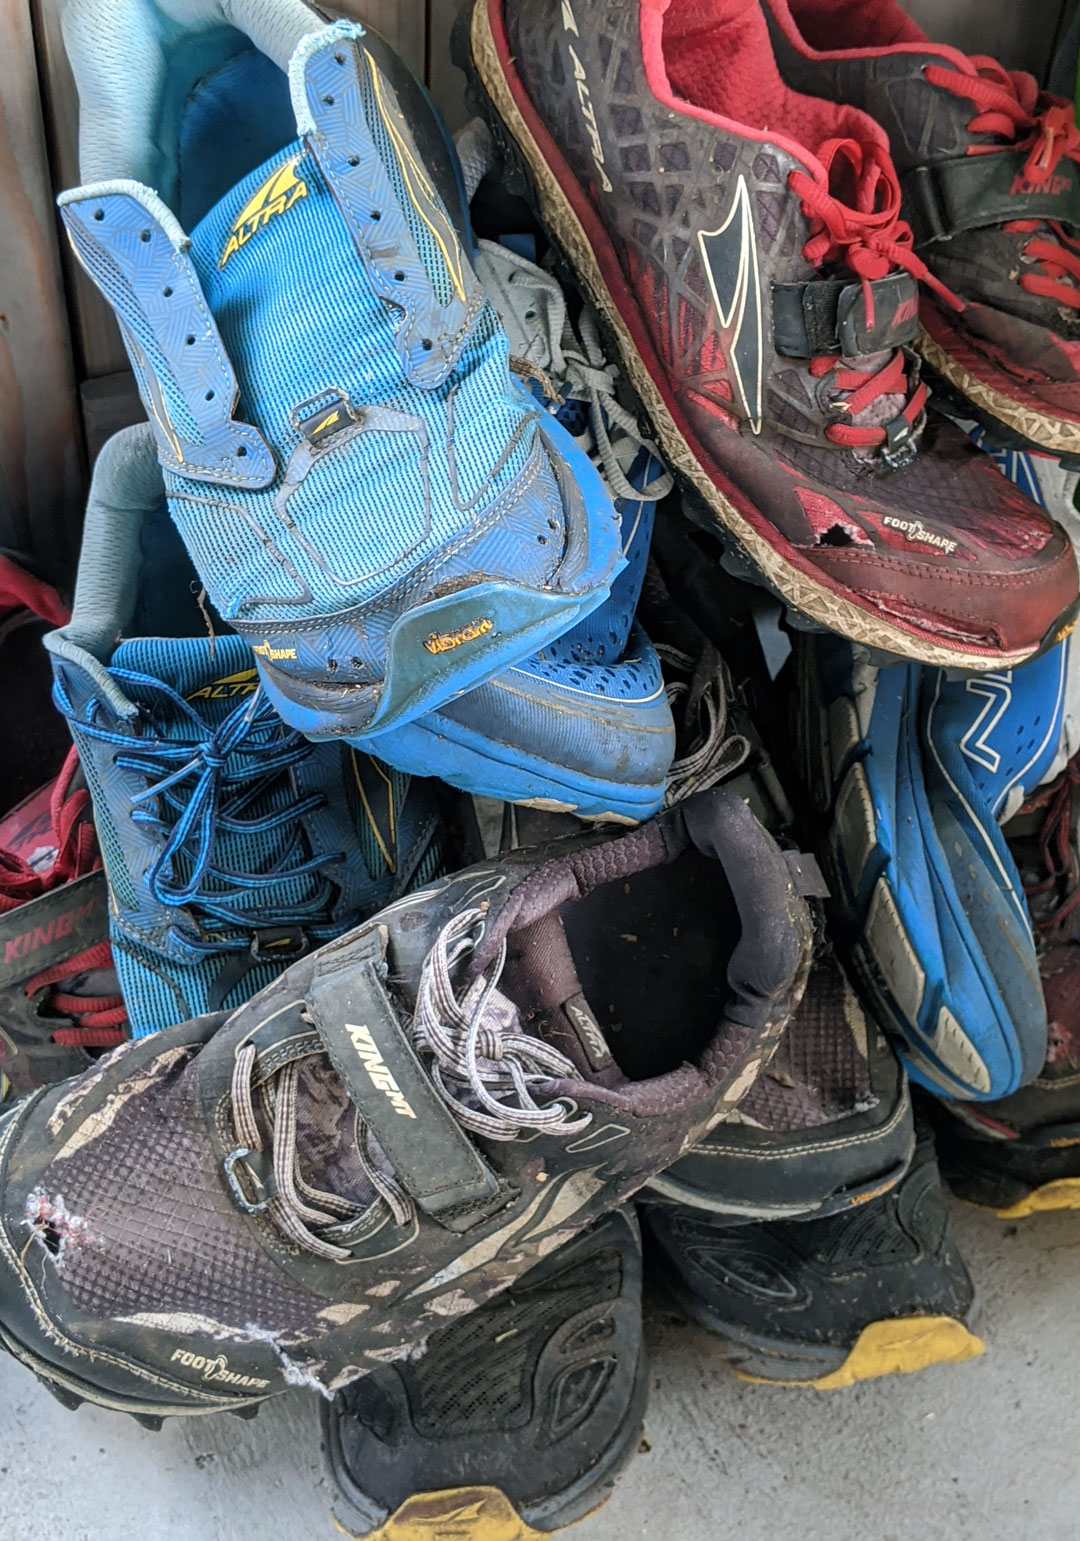 Shoes, pile of